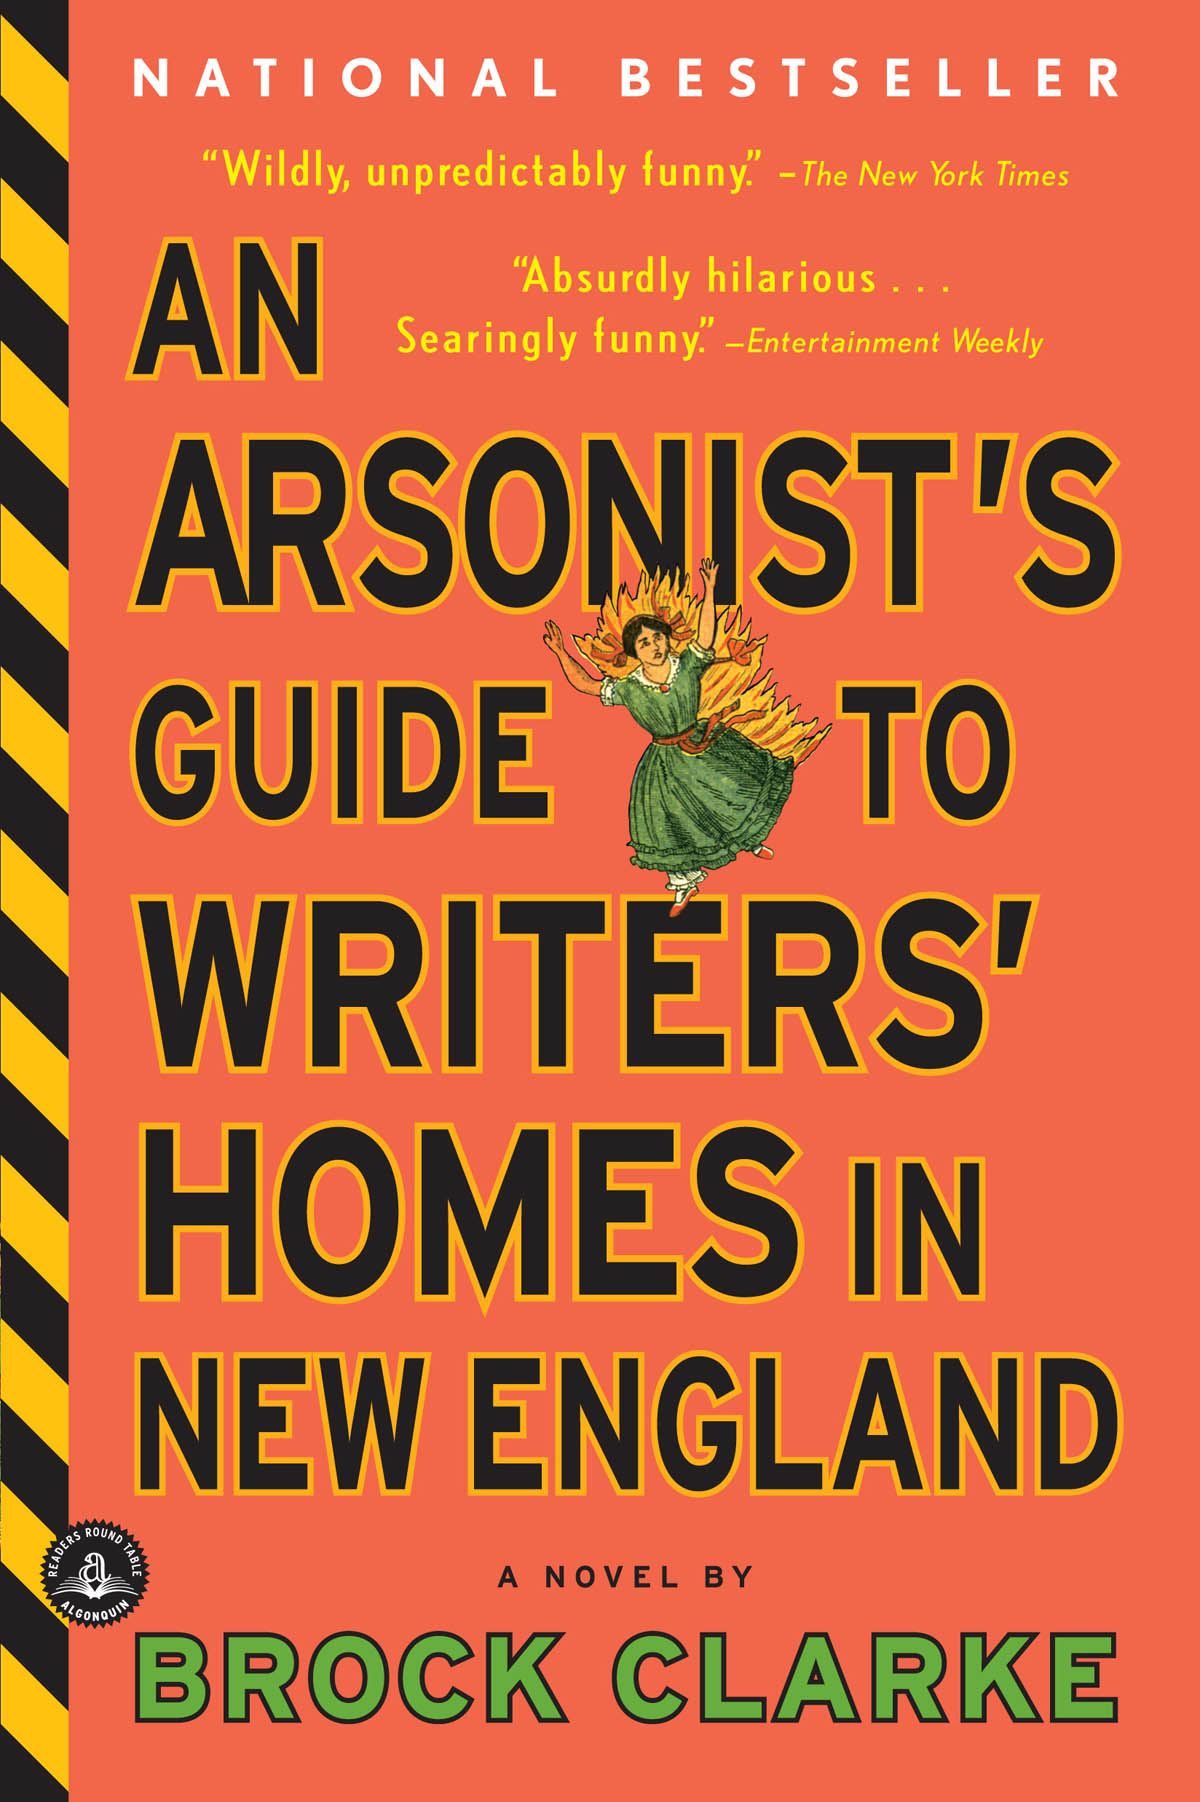 An Arsonist's Guide to Writers' Homes in New England By: Brock Clarke